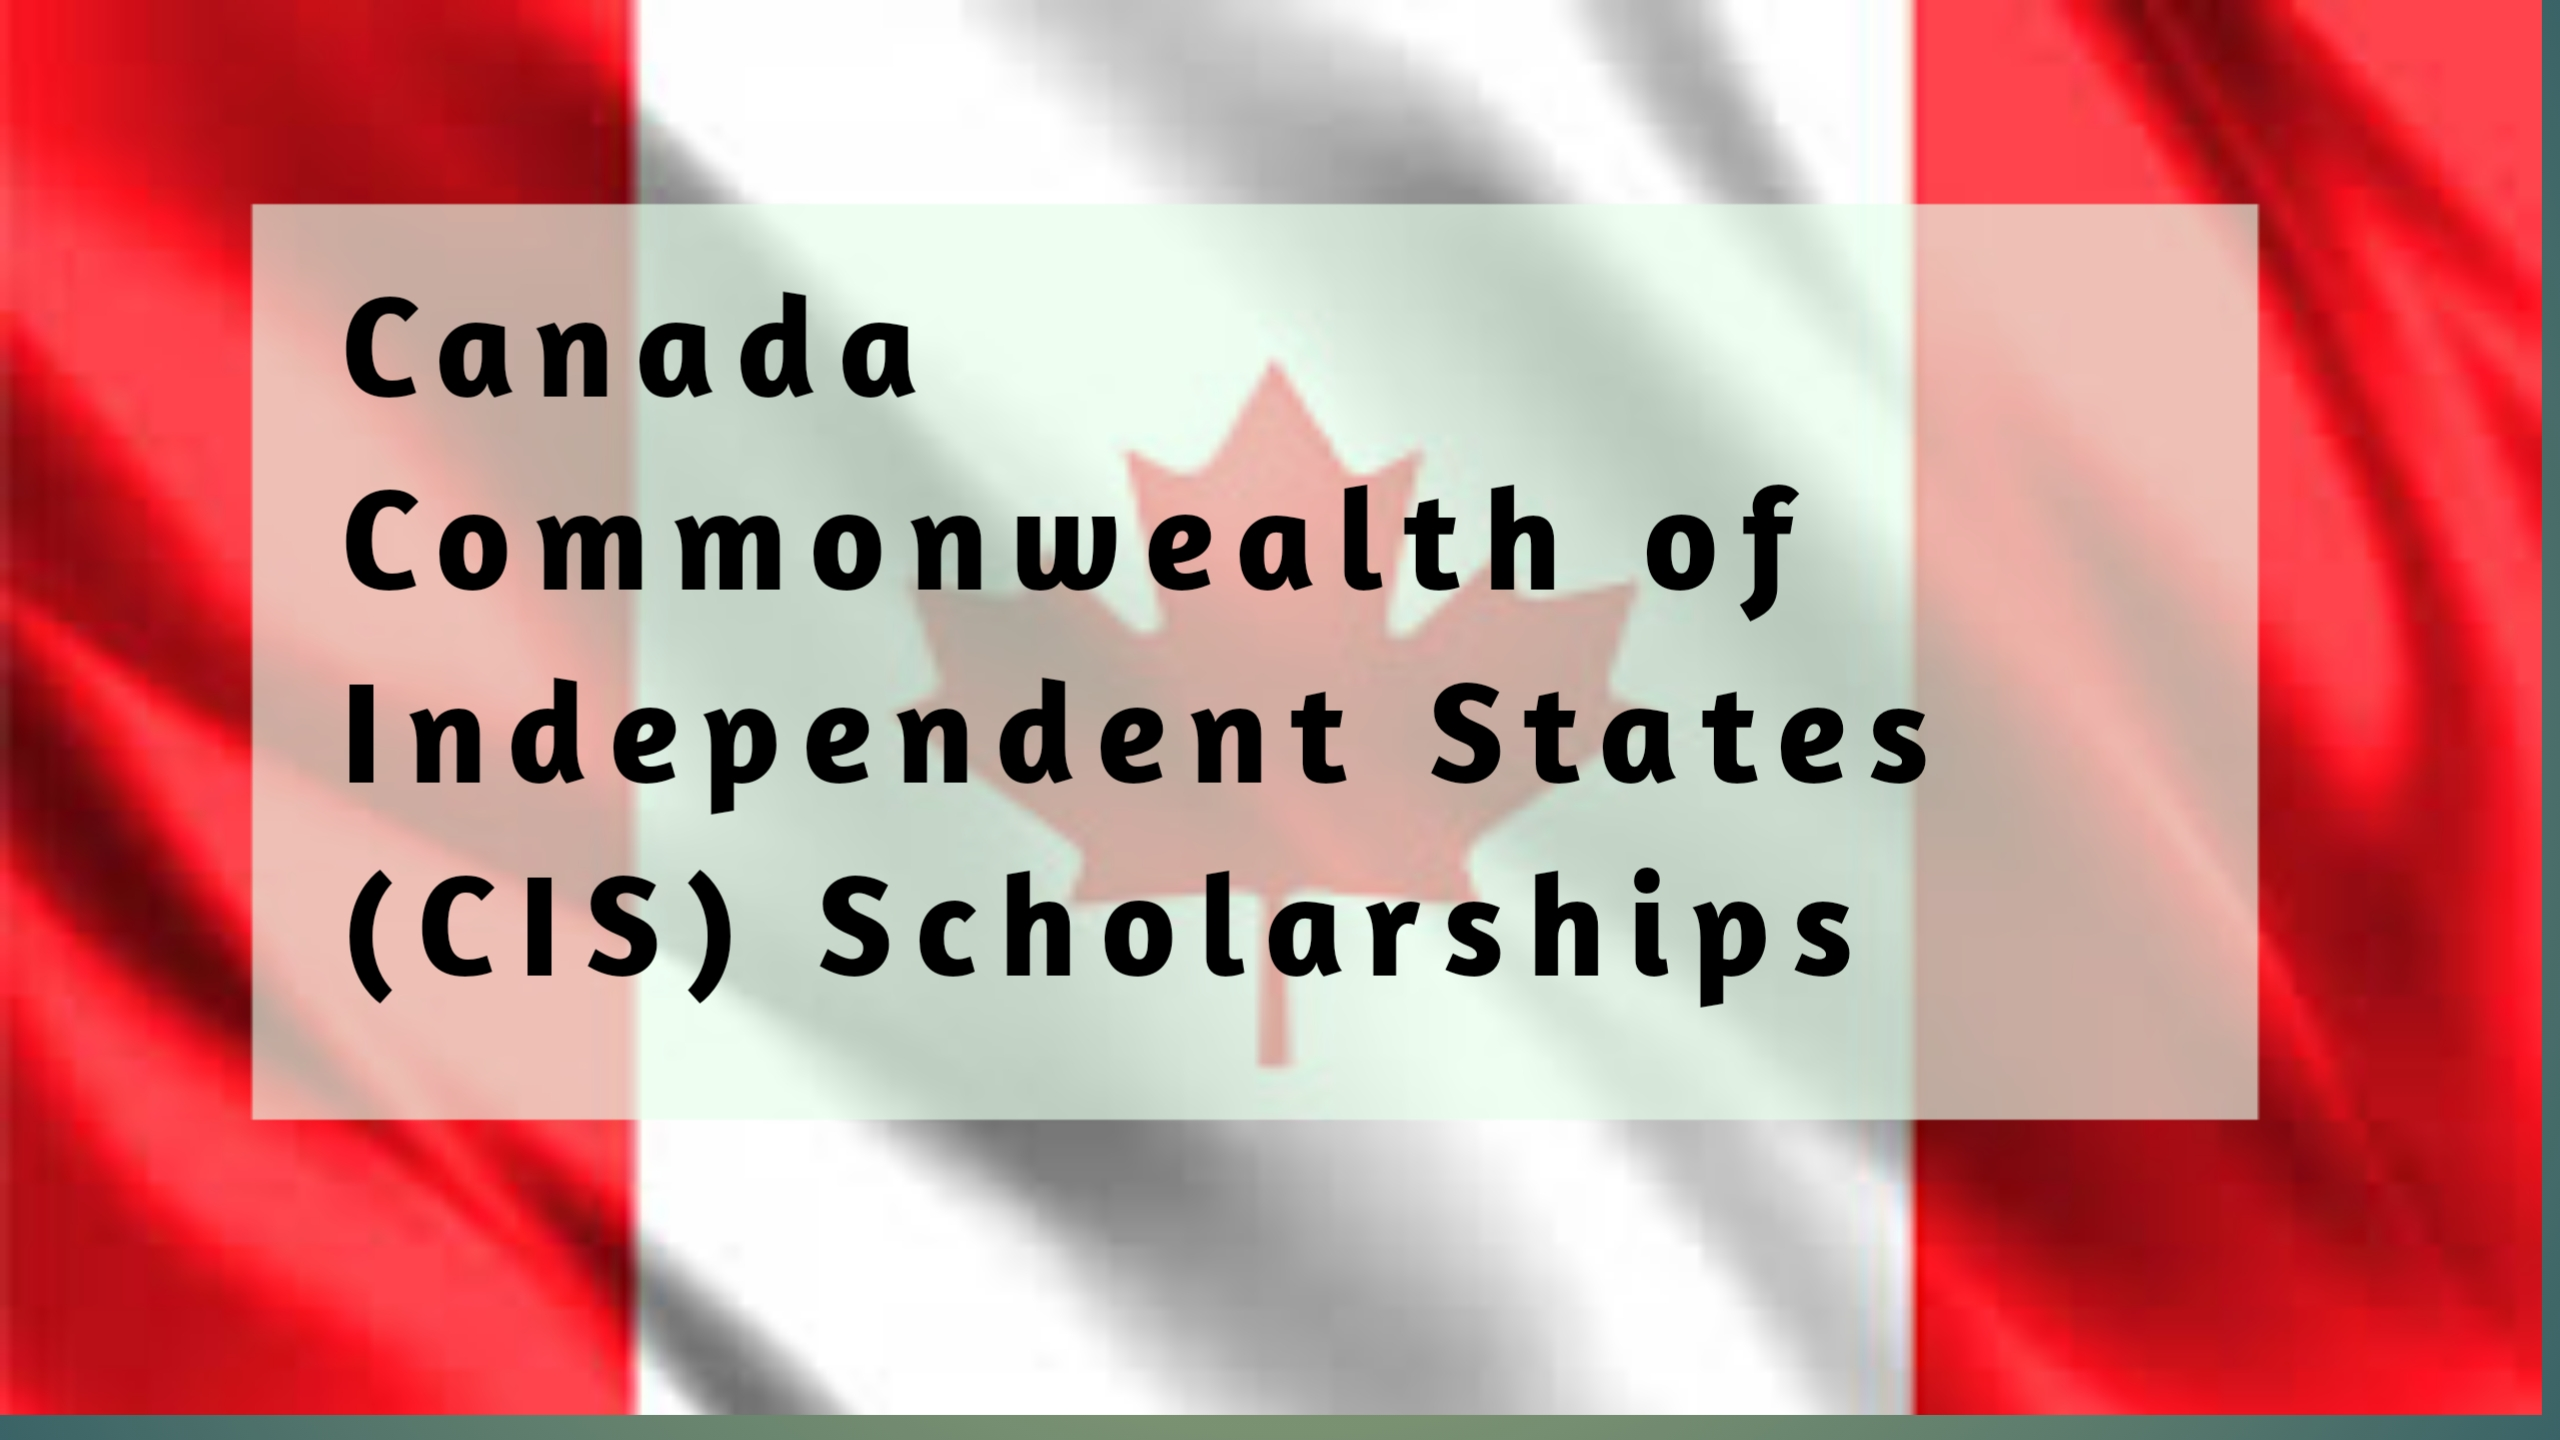 2021/22 Canada Commonwealth of Independent States (CIS) Scholarships